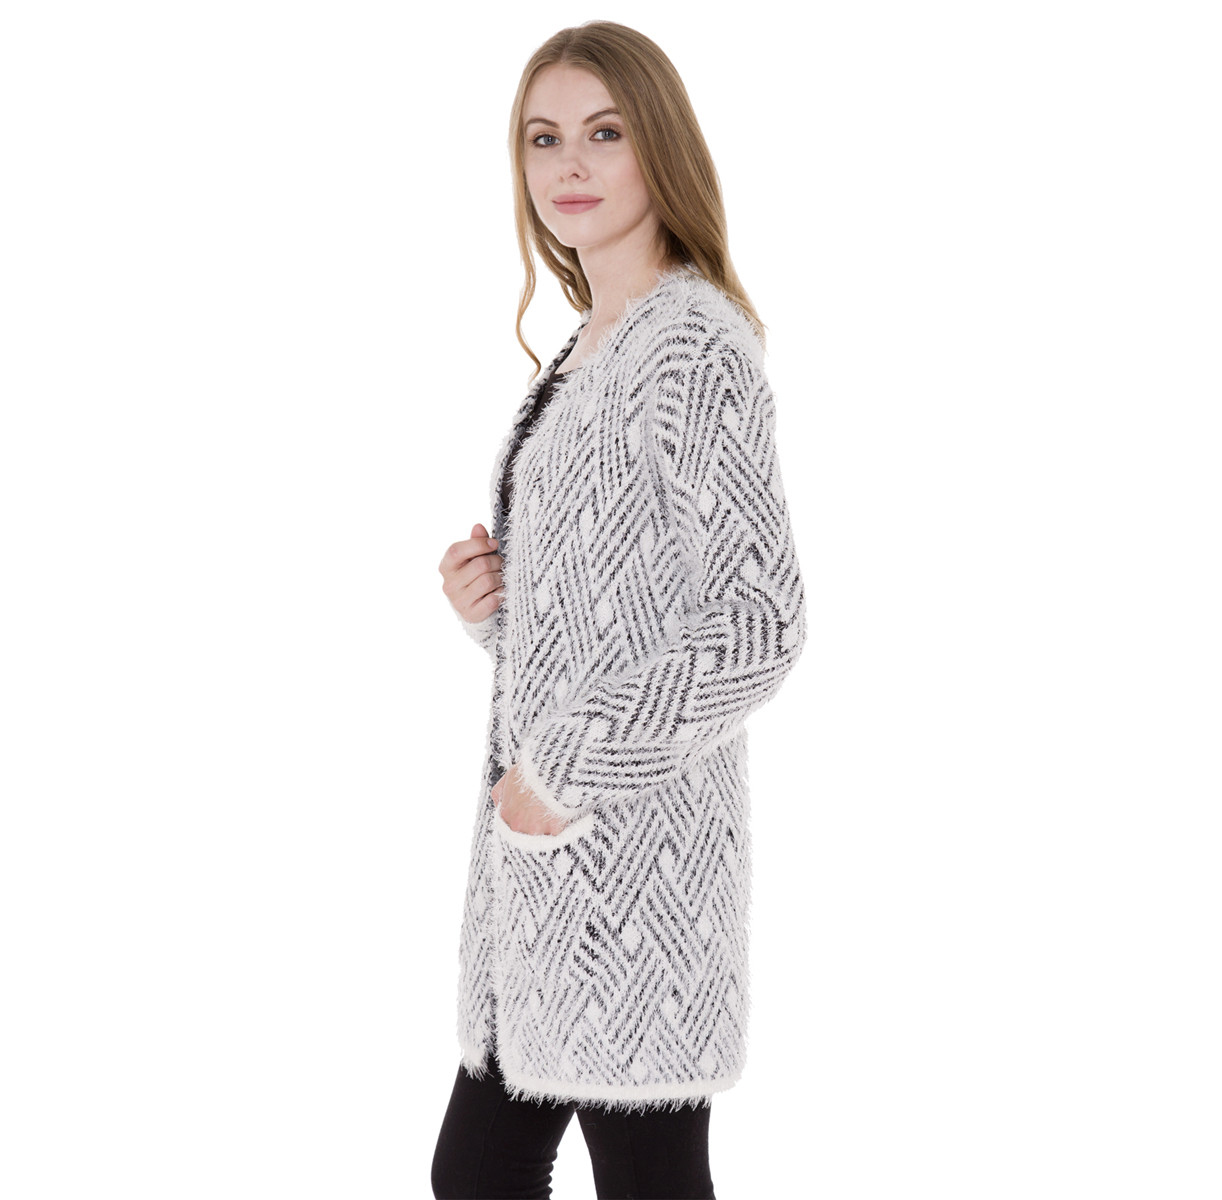 76d03b702f1 The Comfy Cozy Sweater - Best of Everything | Online Shopping